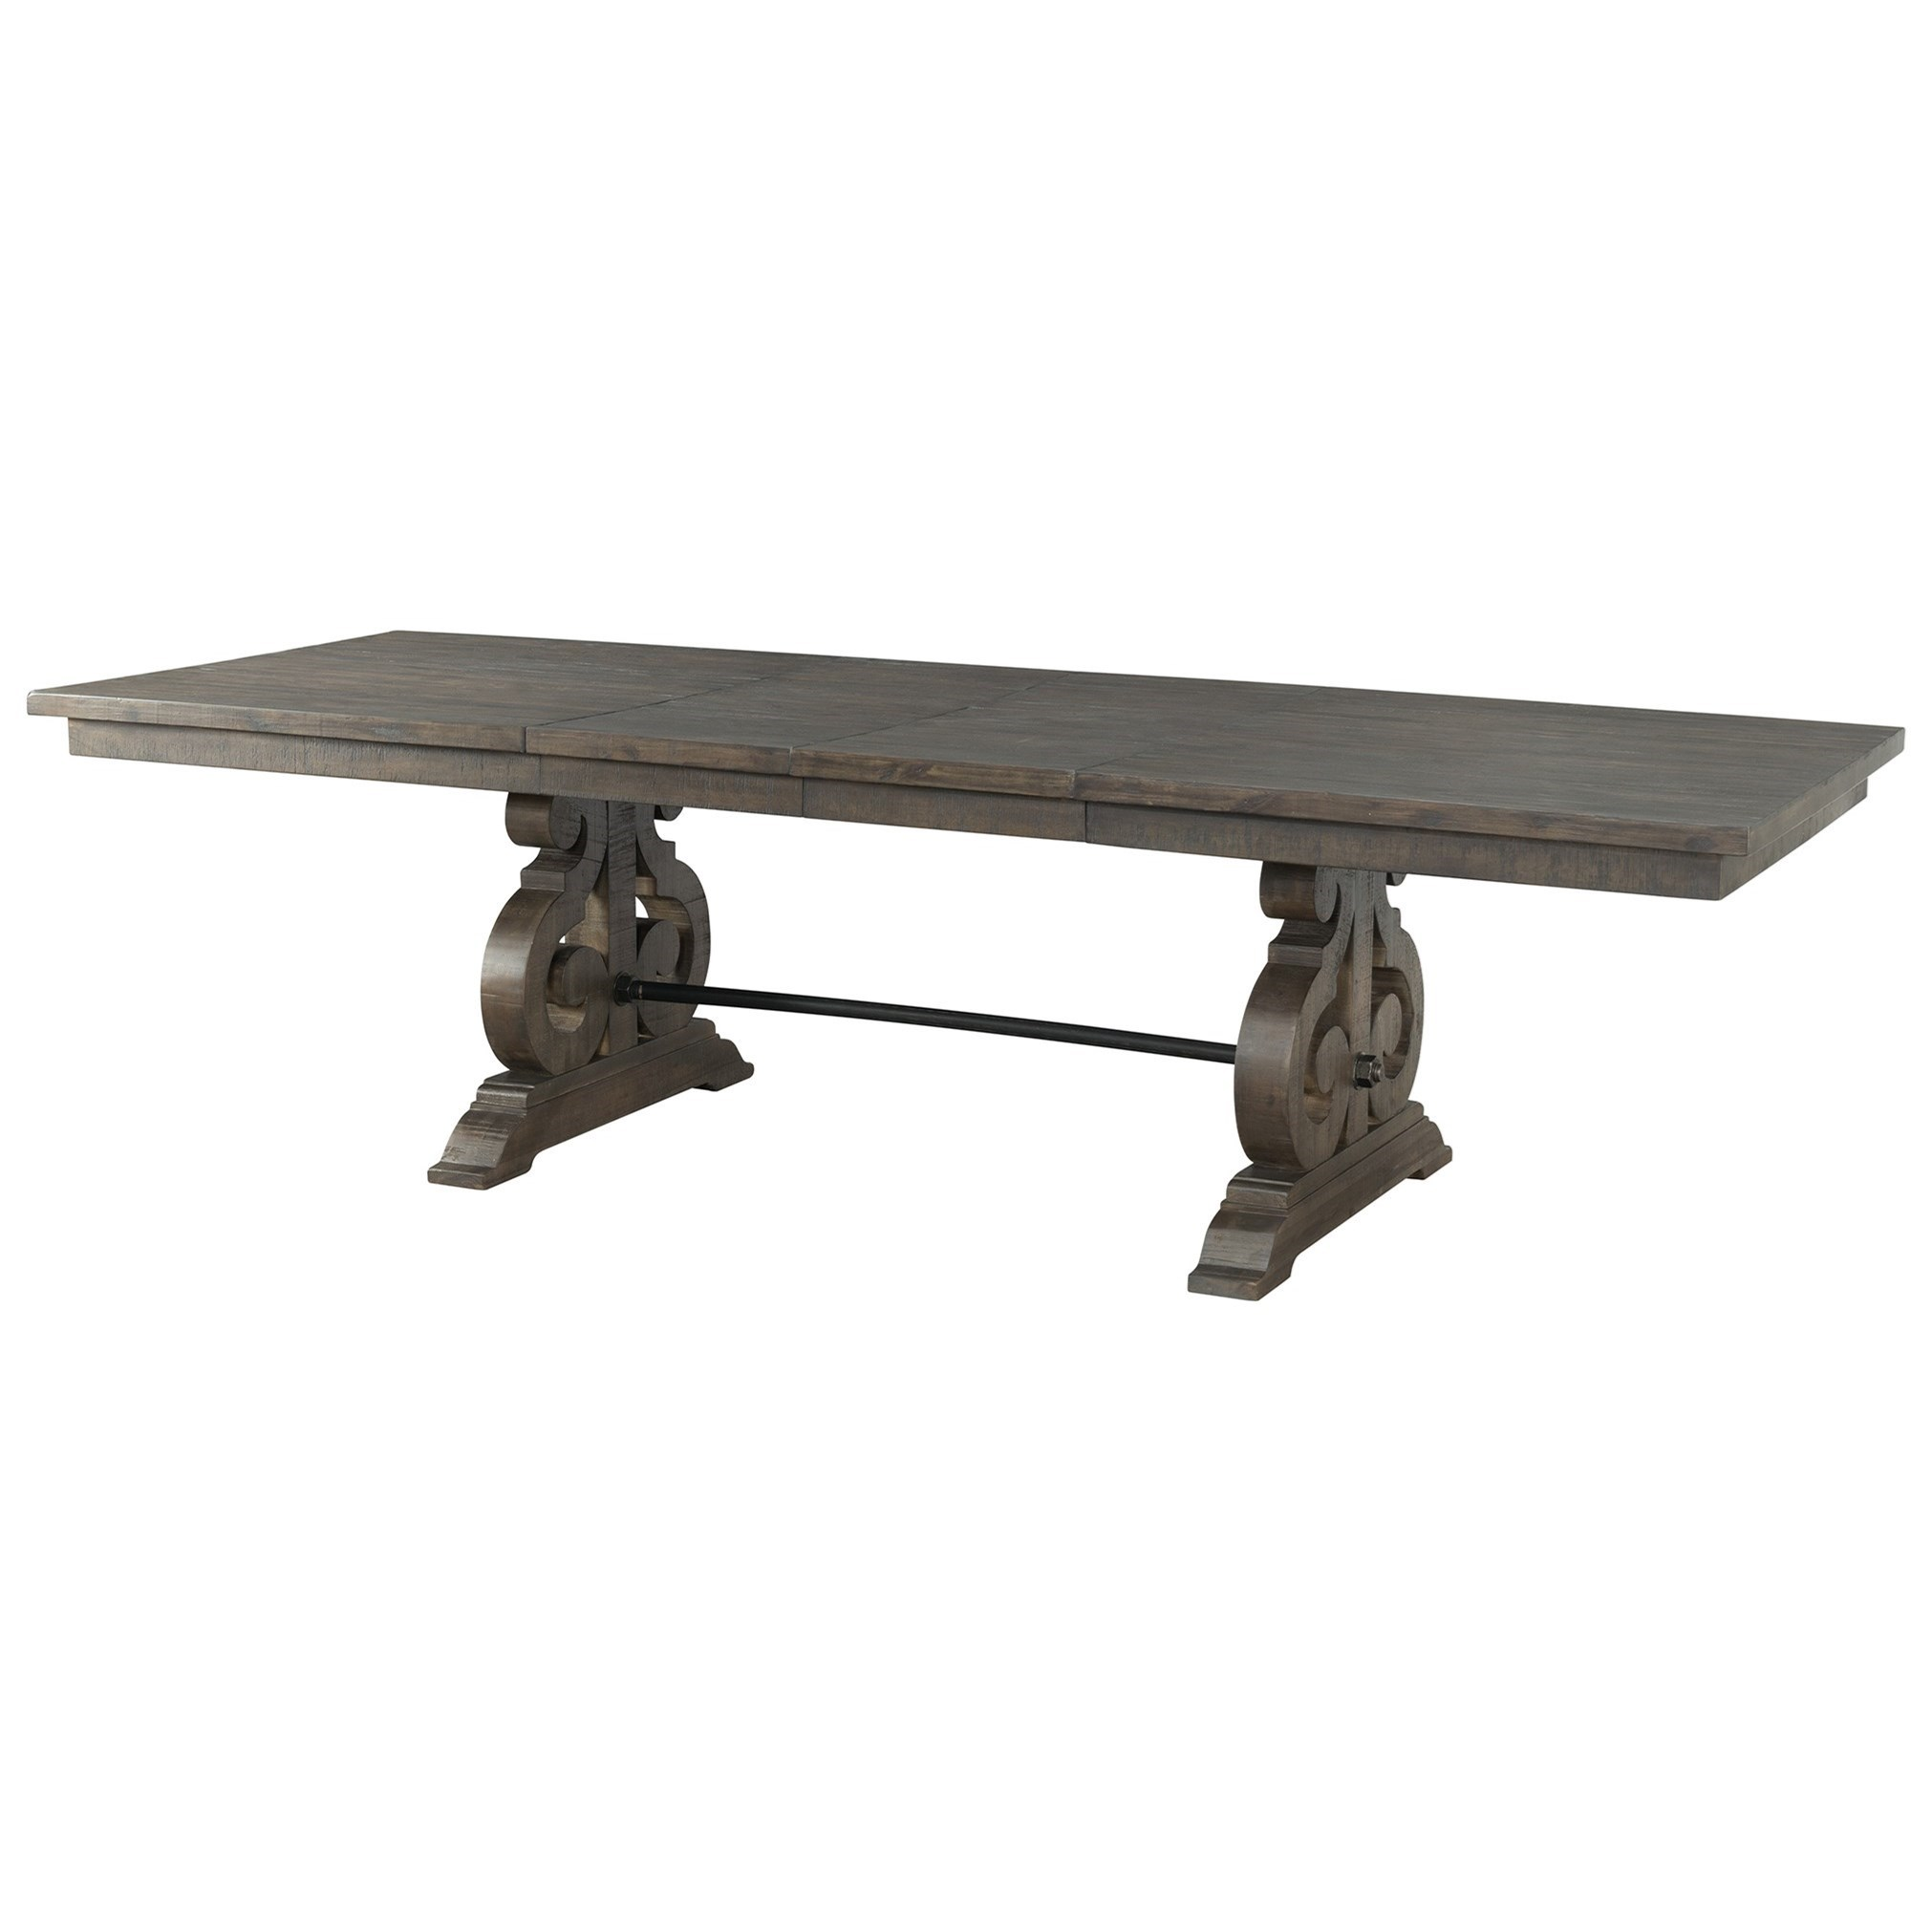 Uncategorized Stone Dining Table elements international stone dining table with decorative scroll item number dst100dtdst100db